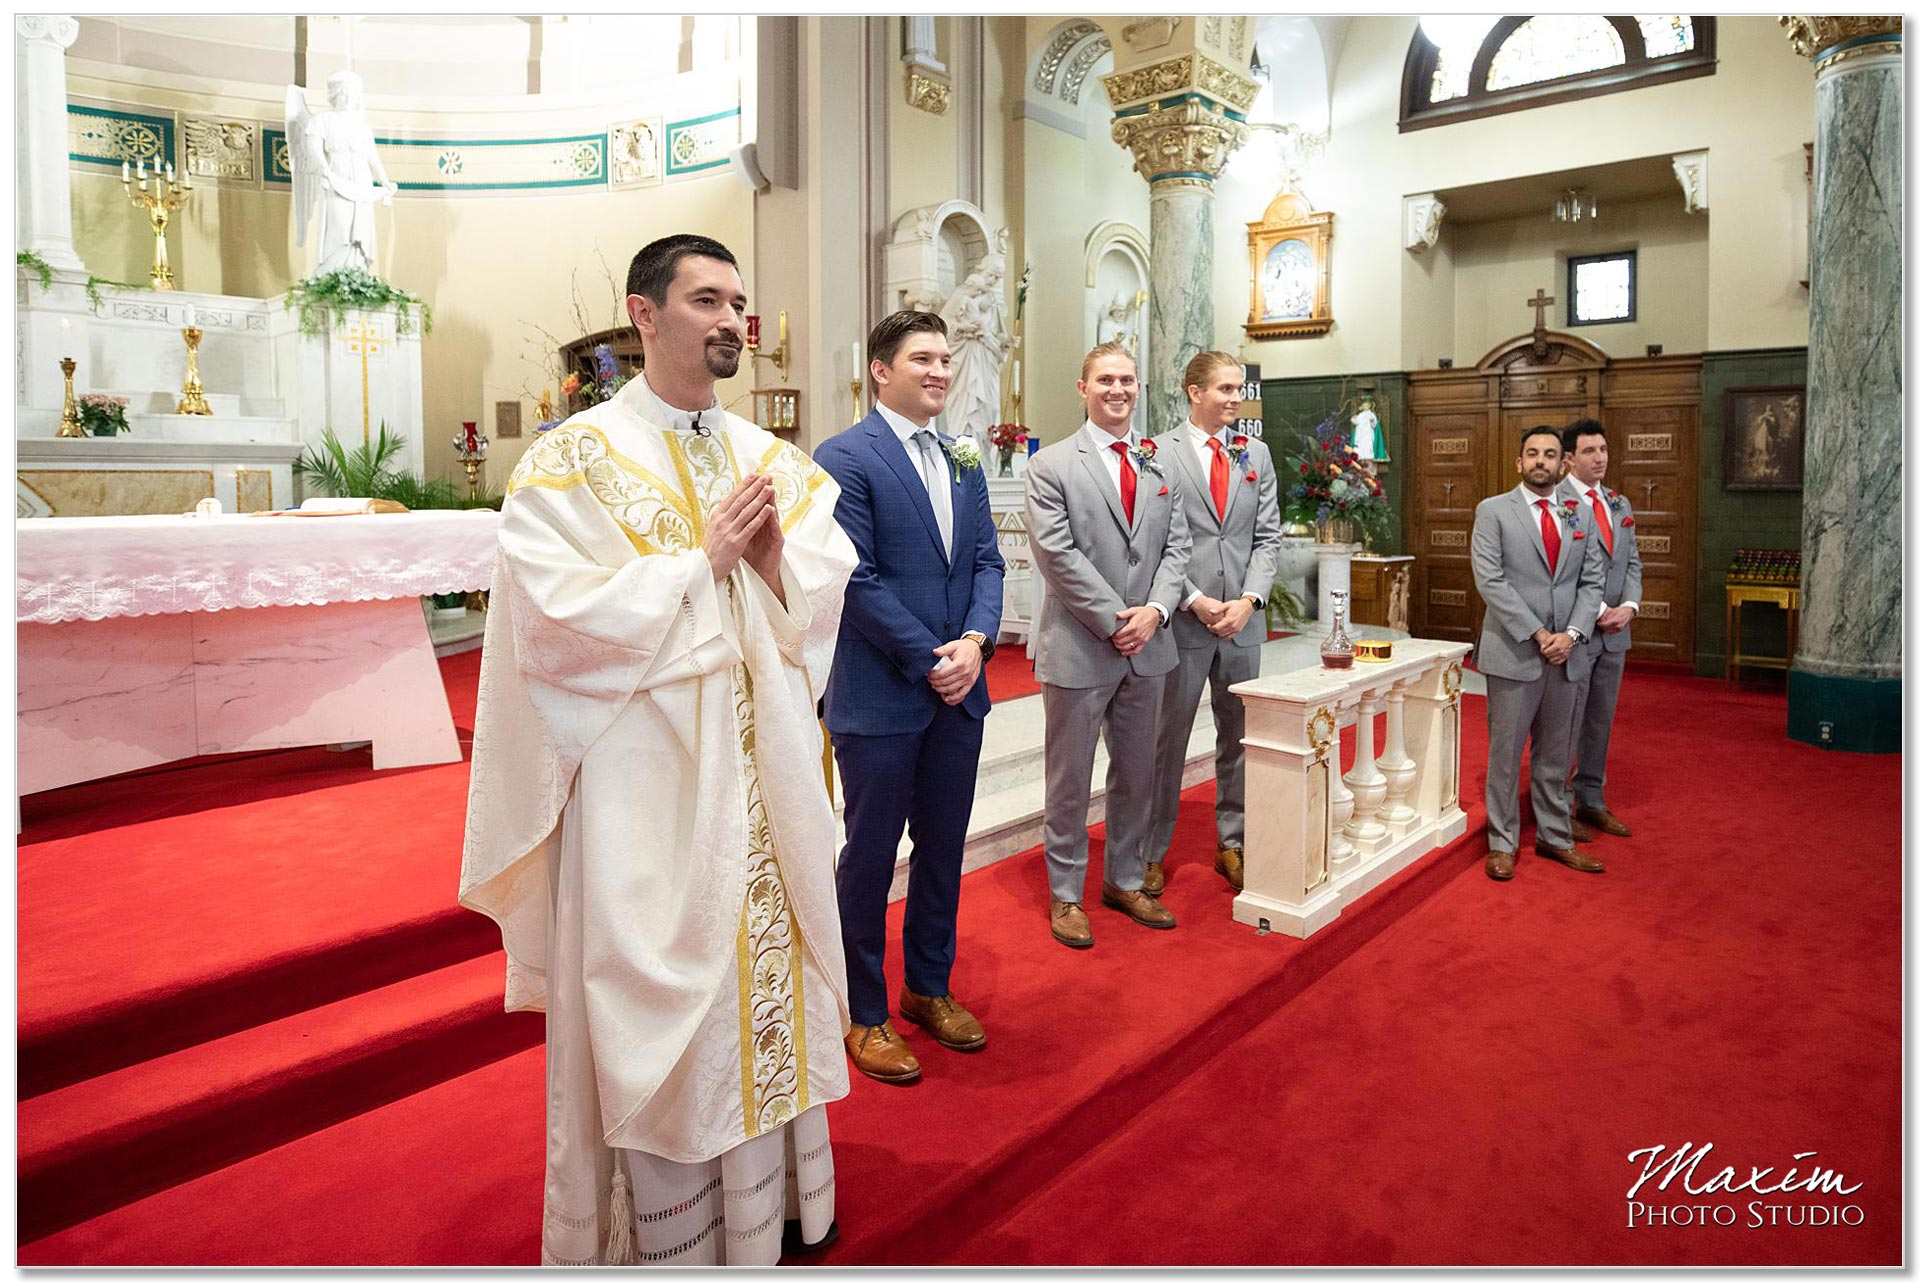 St. Joseph Catholic Church Ceremony